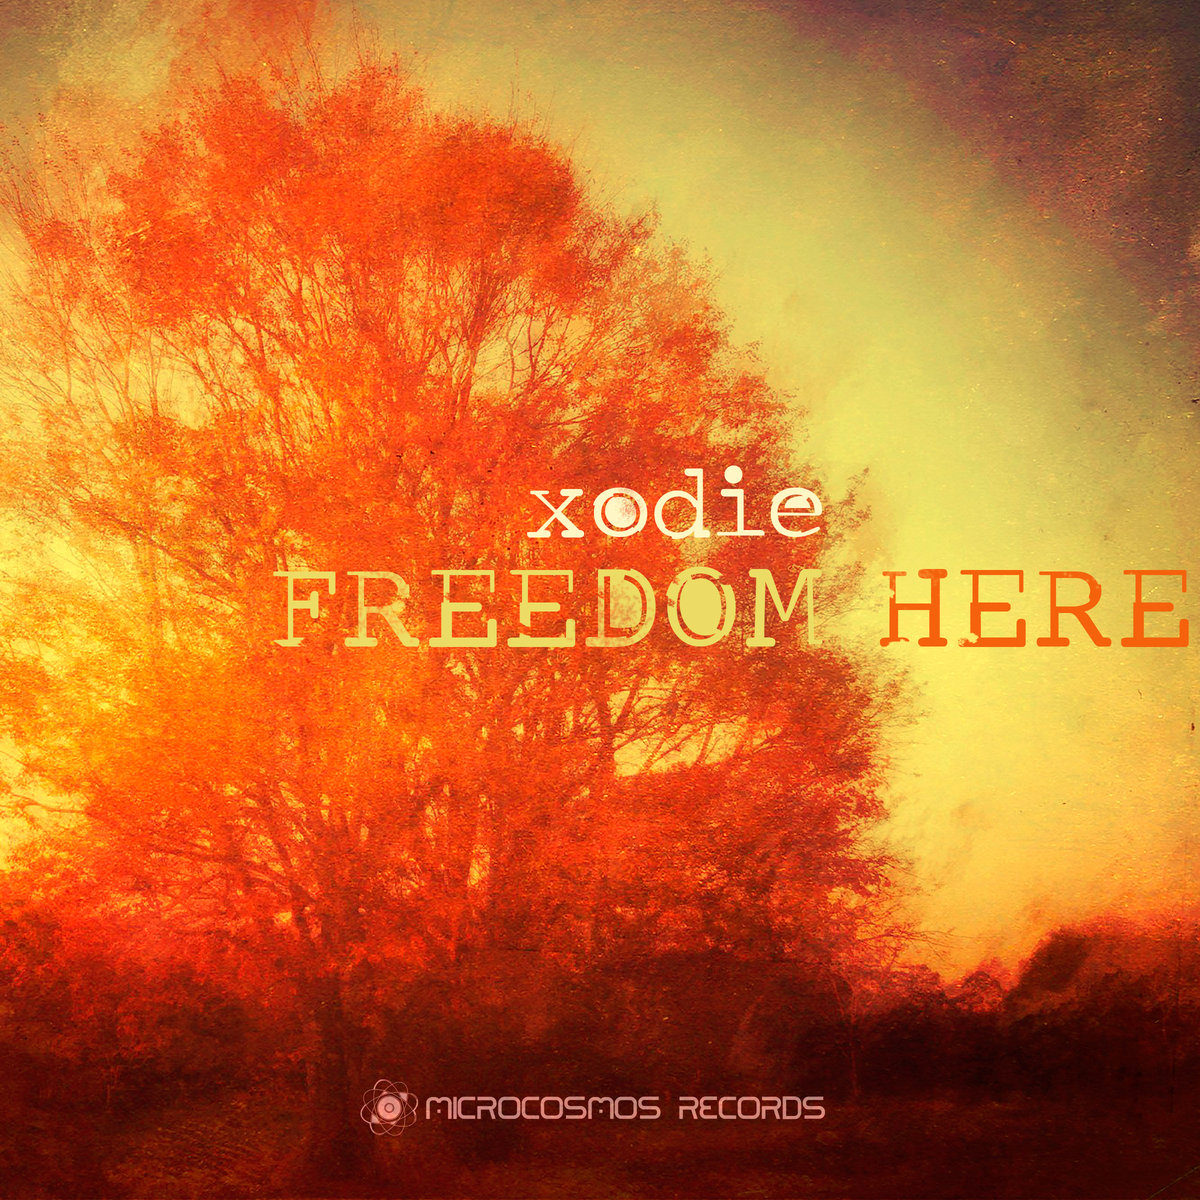 Xodie - Freedom Here @ 'Freedom Here' album (ambient, chill-out)